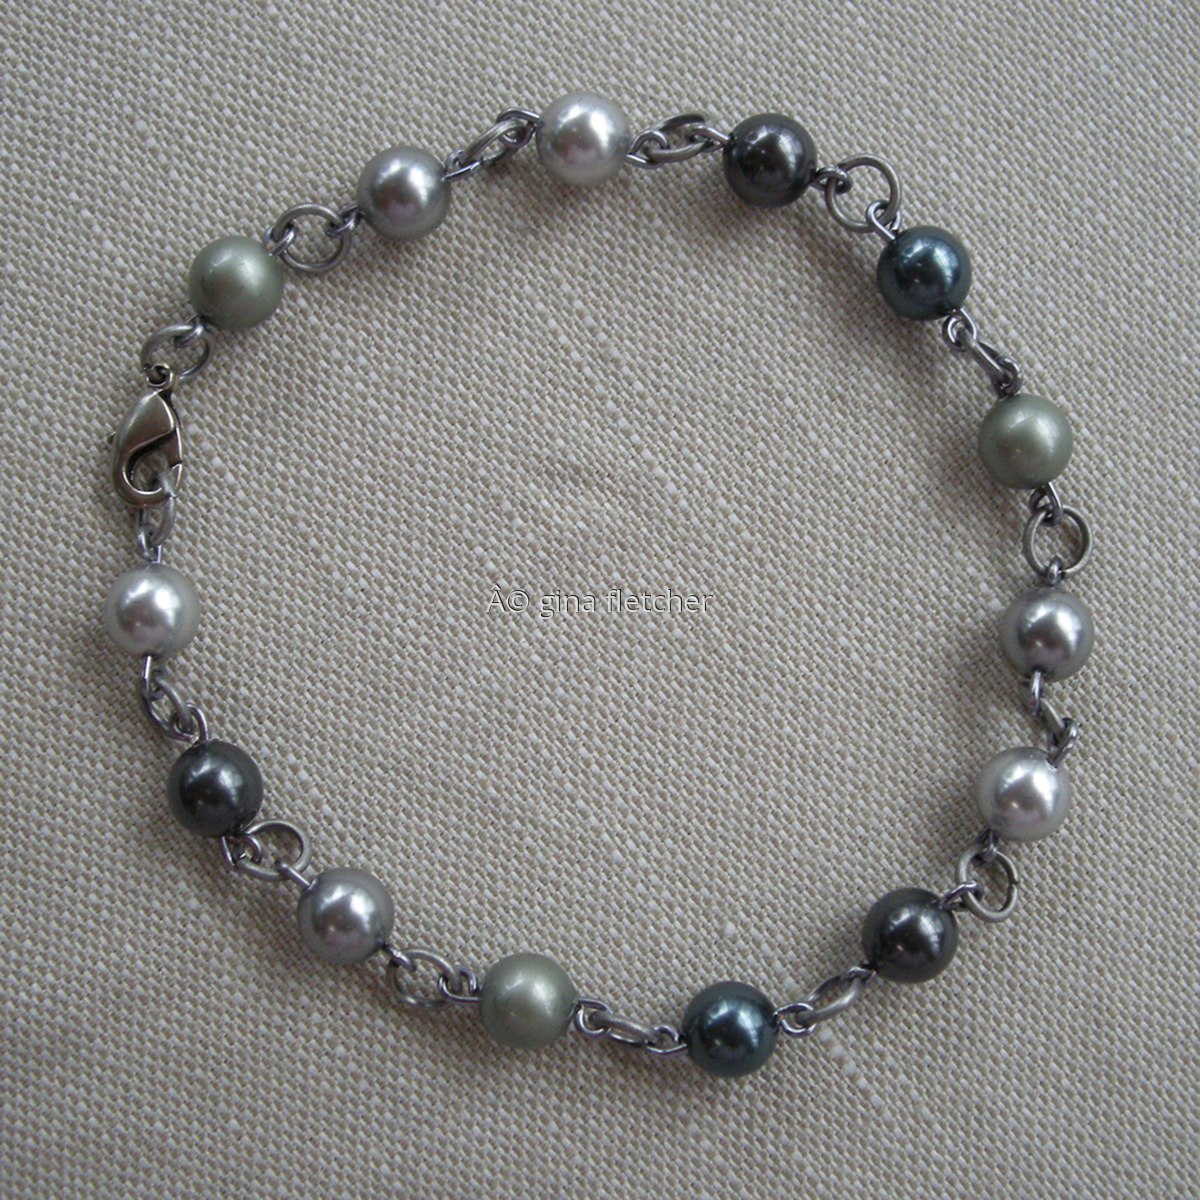 pearl bracelet (large view)